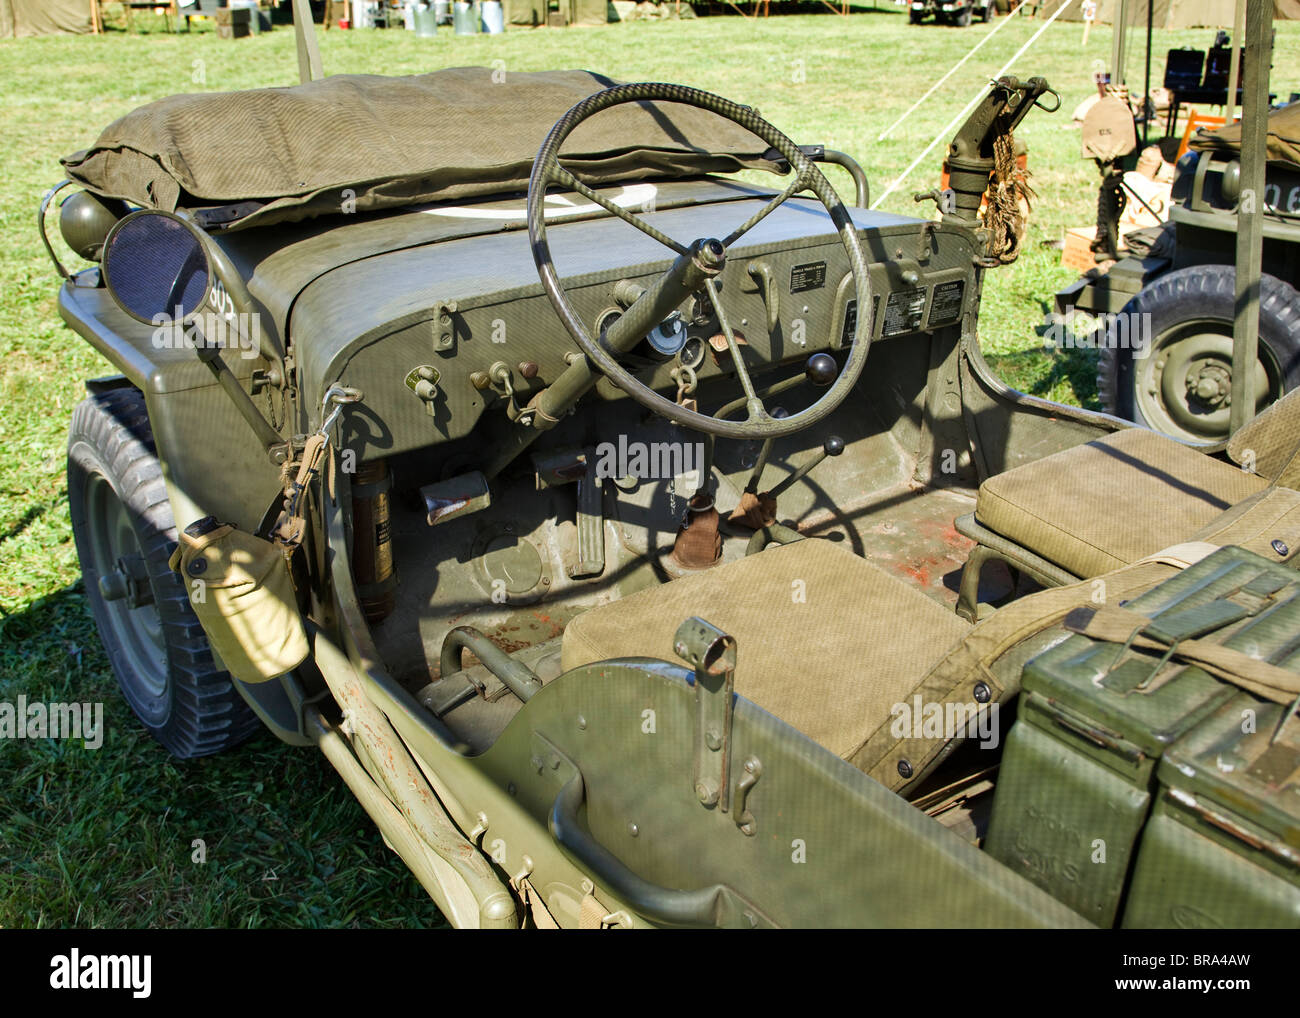 Us Army Jeep Stock Photos Images Alamy Willys Jeeps On Filter Box Interior View Of Wwii Era Image